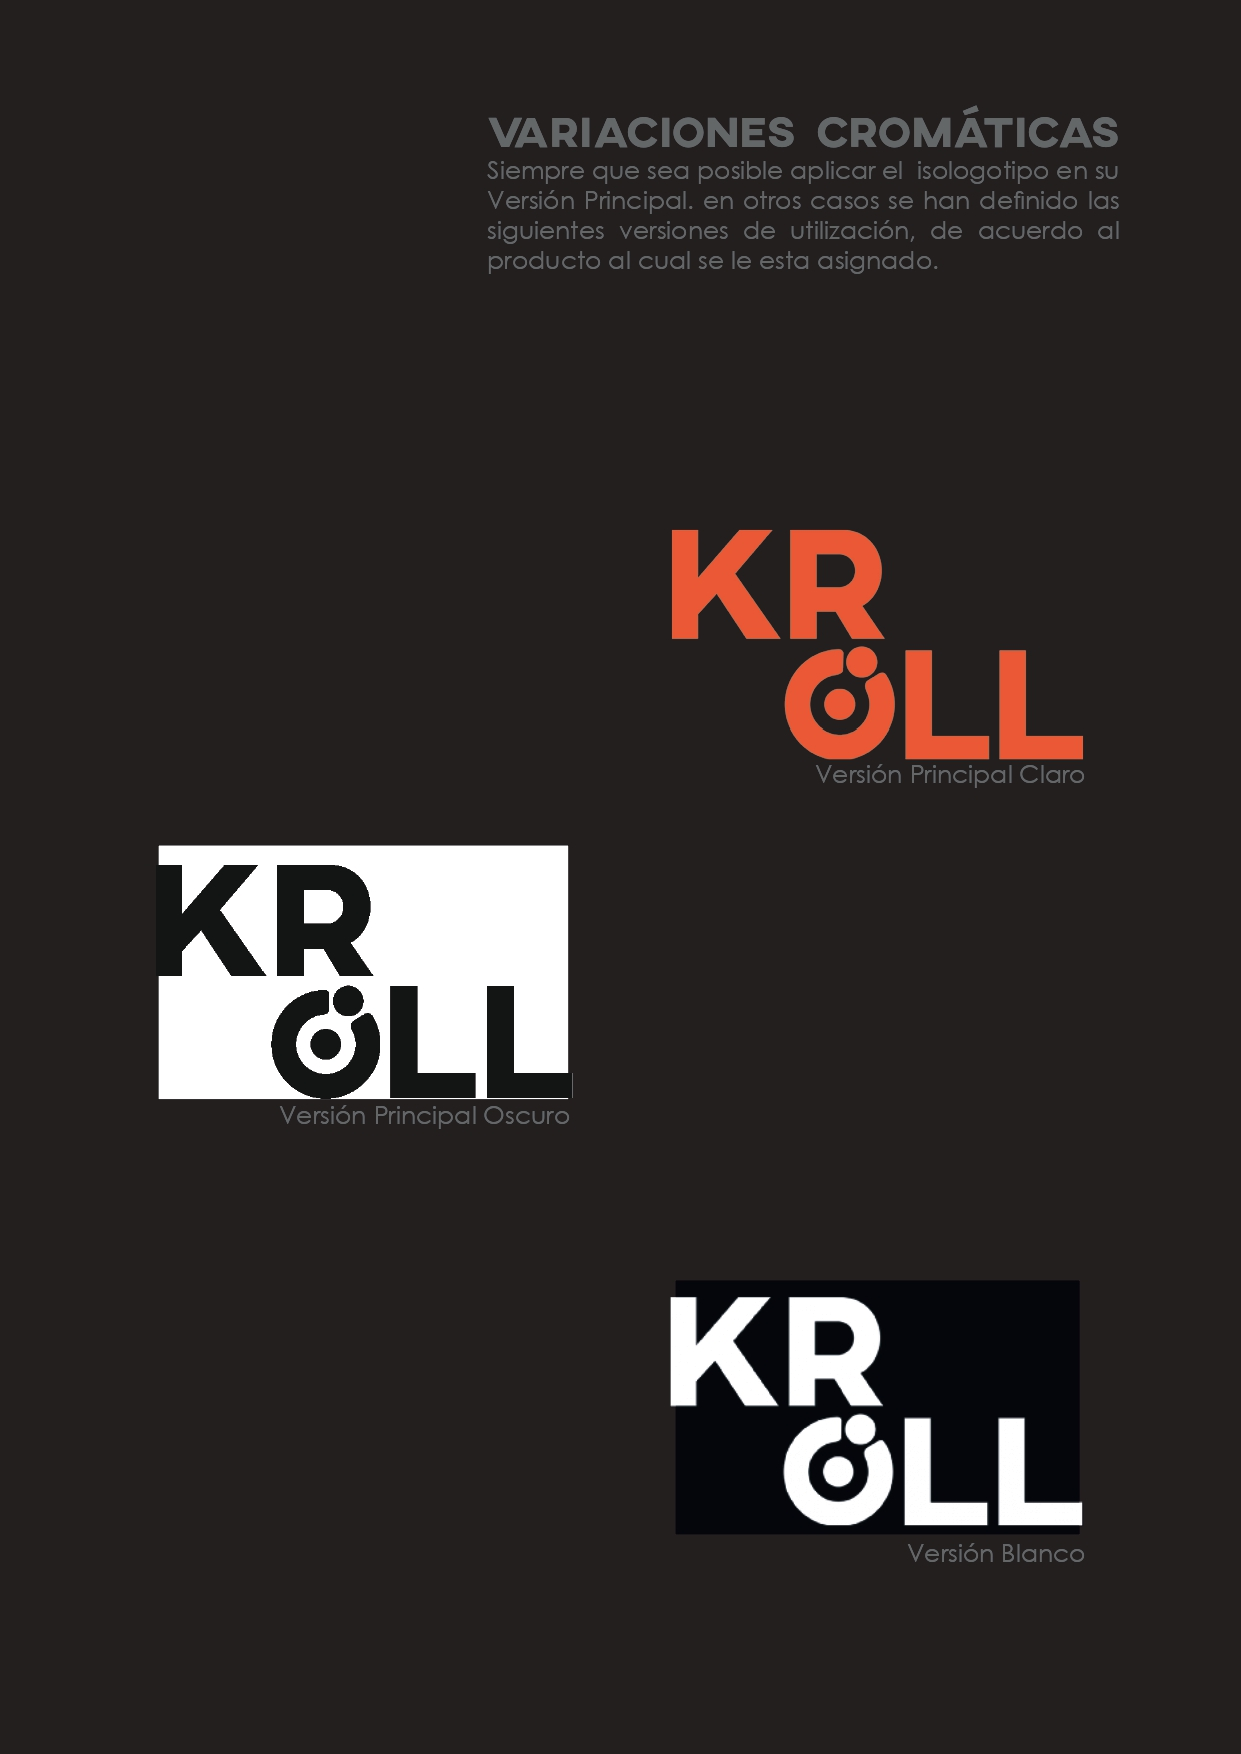 Manual Kroll1 (1)_pages-to-jpg-0009